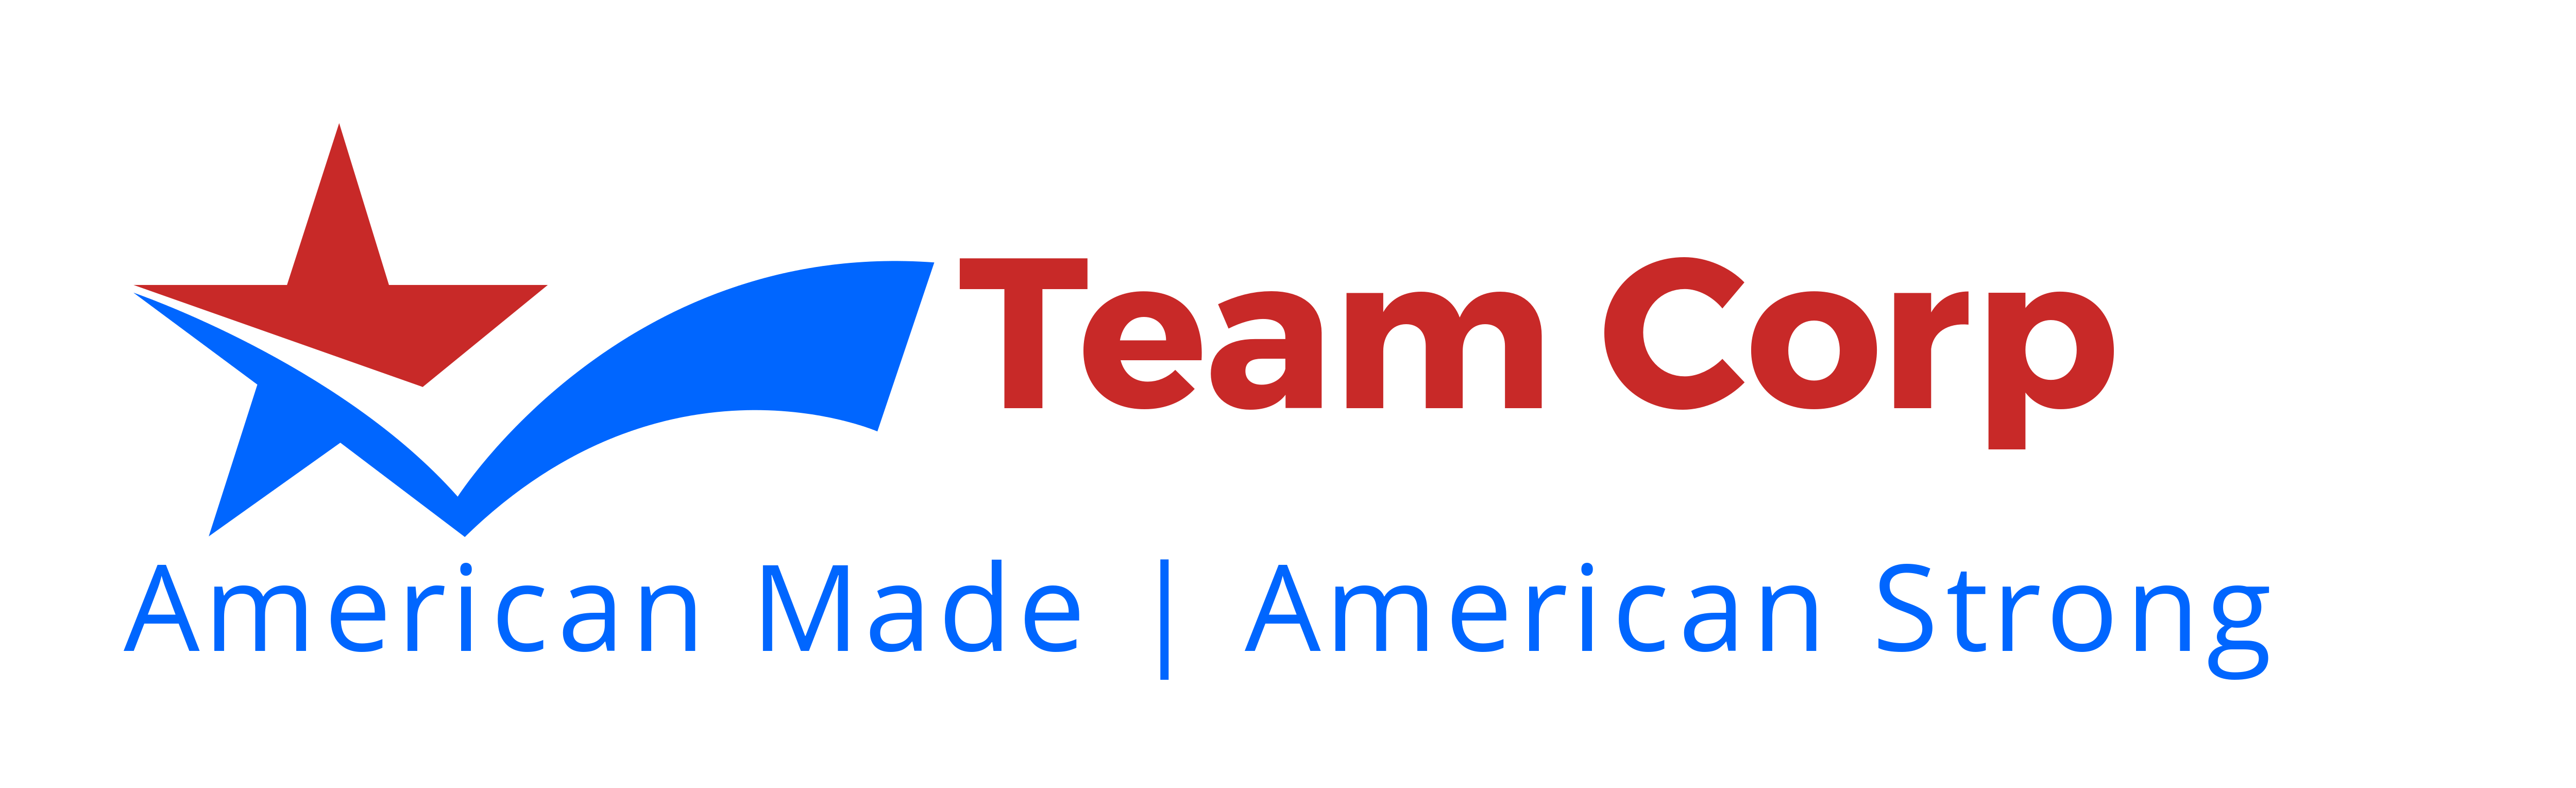 TeamCORP. American Made. American Strong.